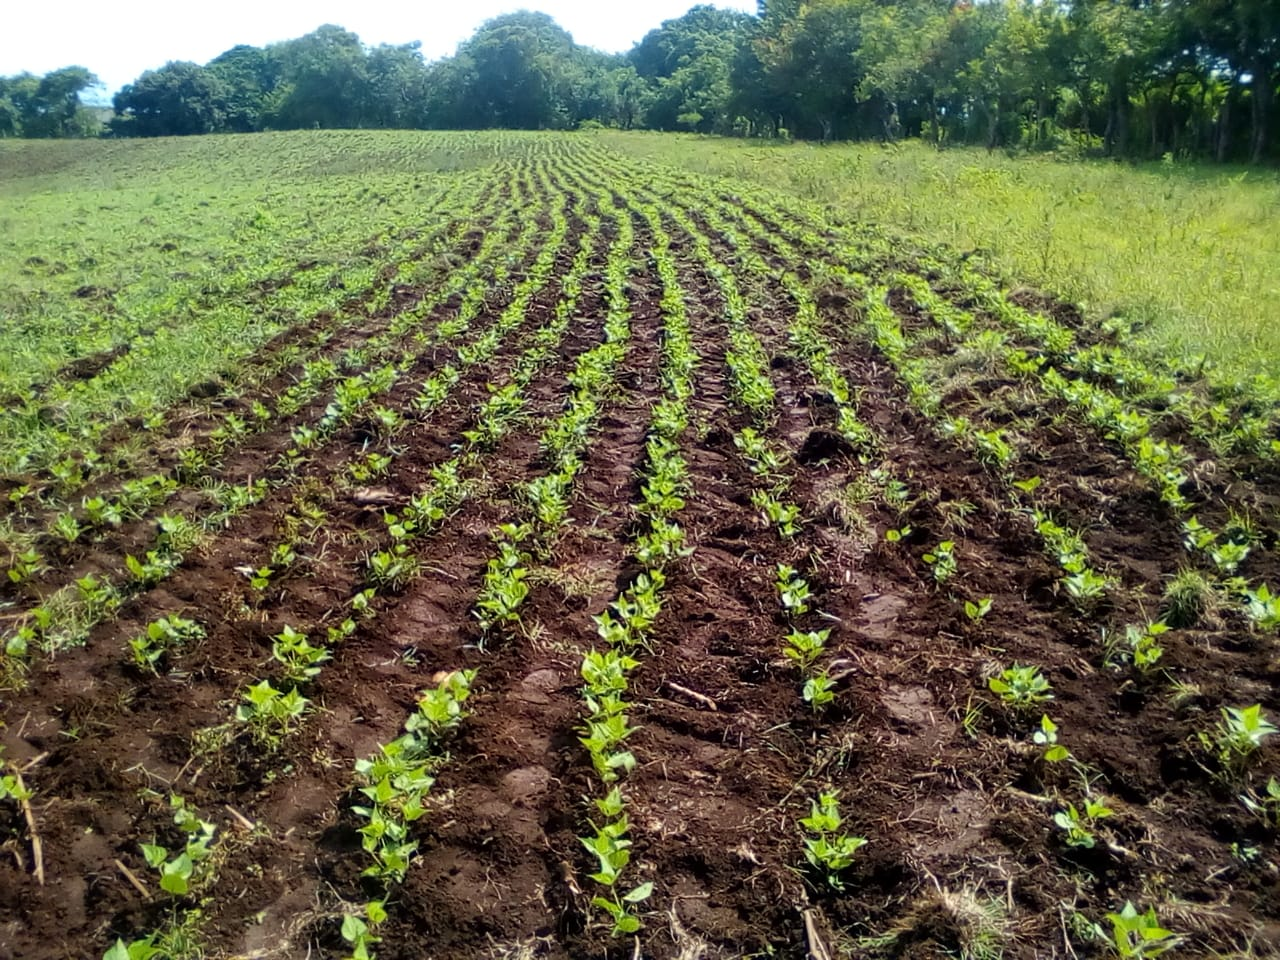 Land for agriculture or housing development